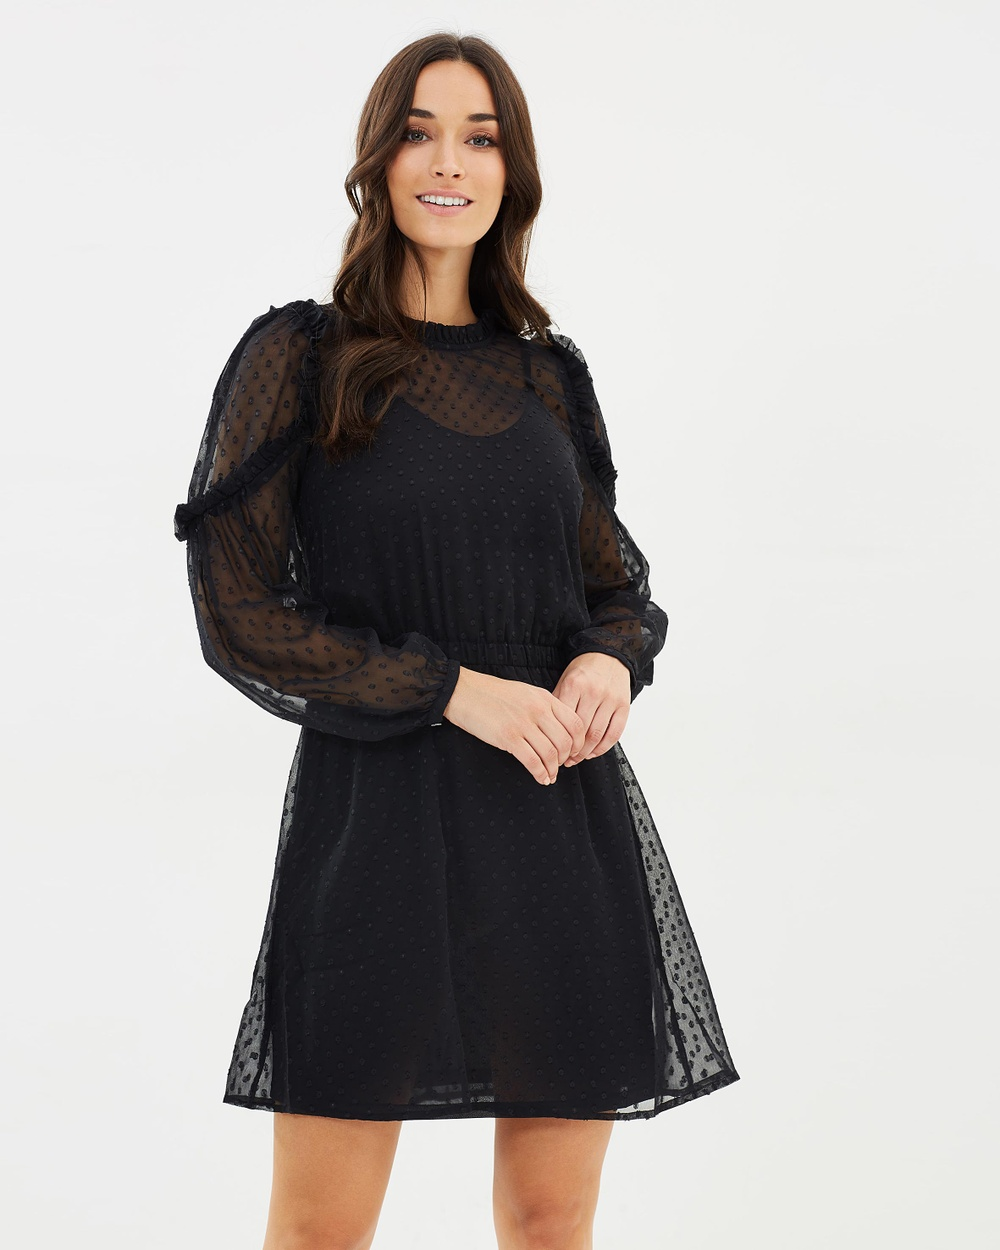 Vero Moda Amanda Long Sleeve Dress Dresses Black Amanda Long Sleeve Dress